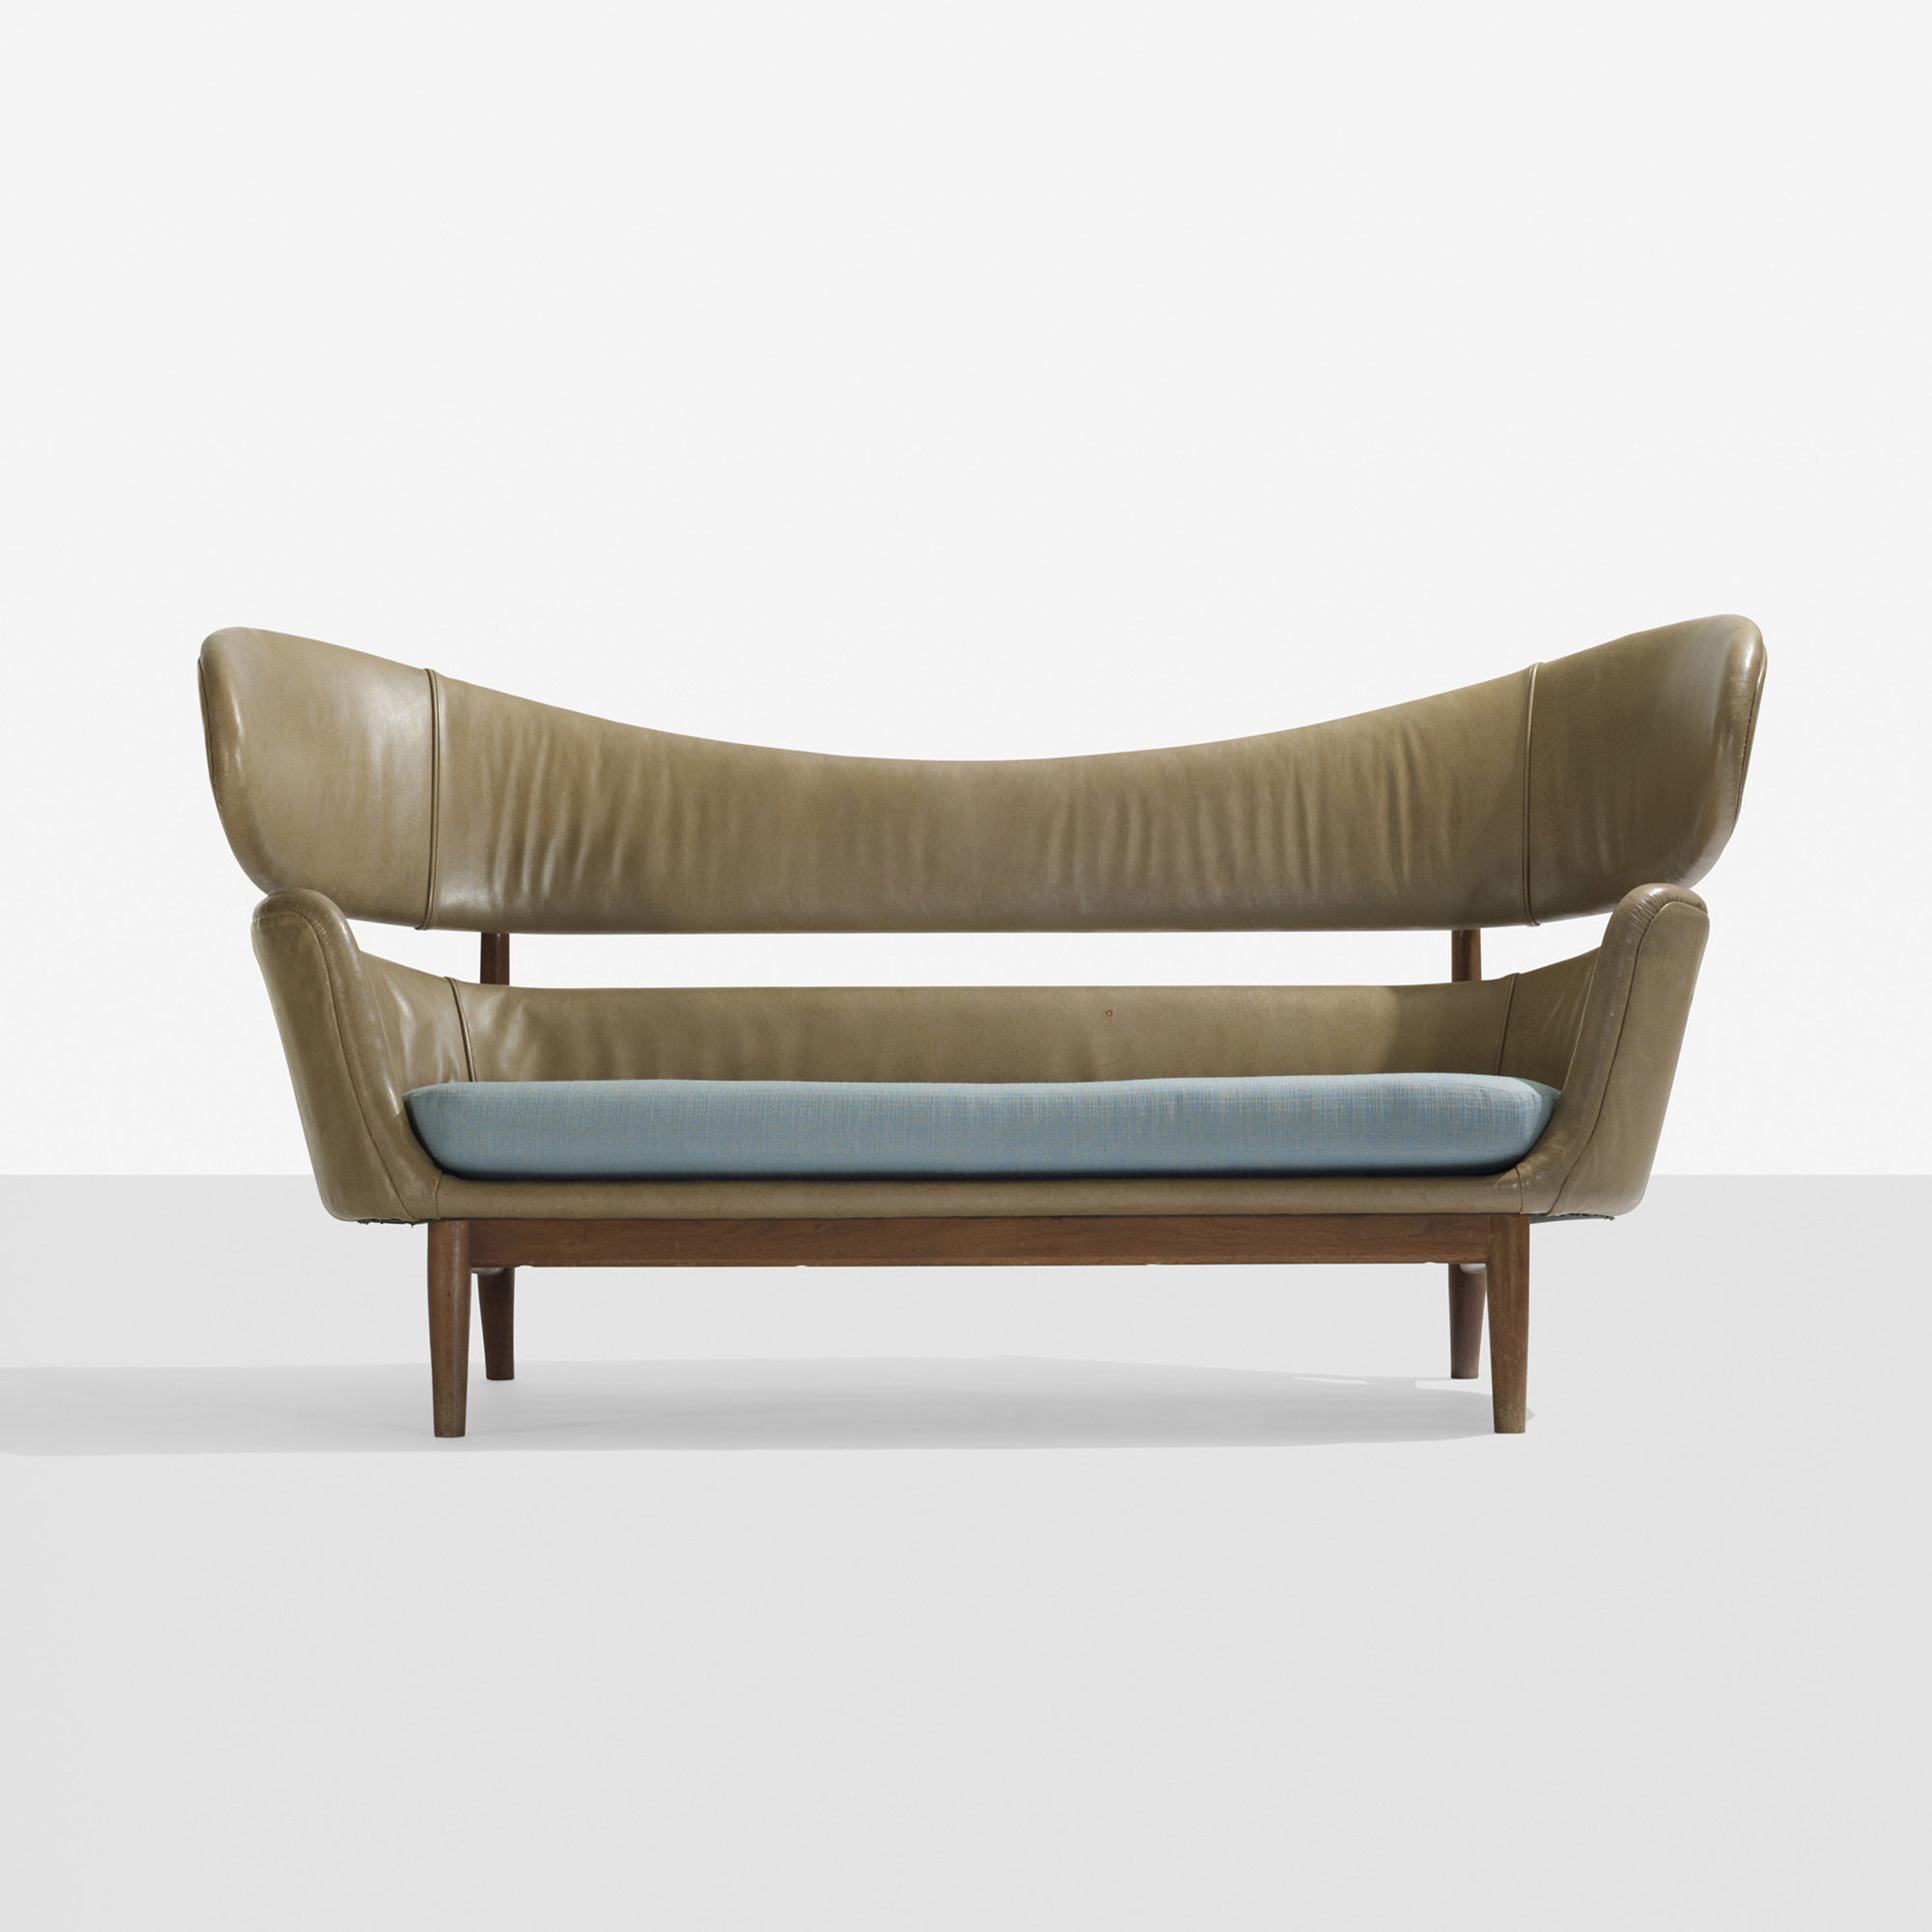 Baker sofa finn juhl for Danish design sofa